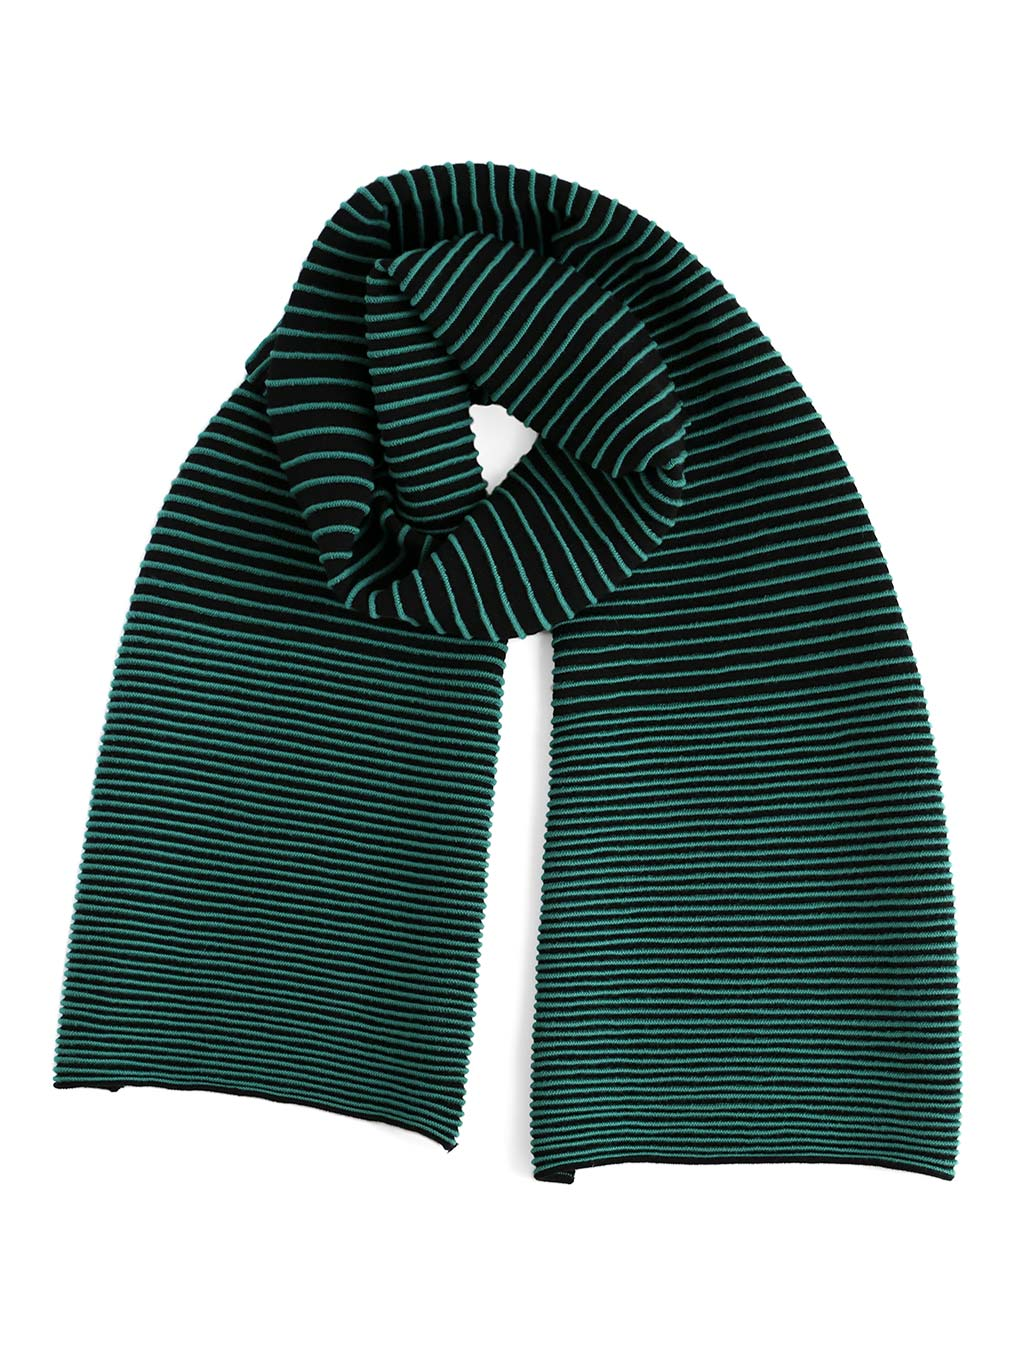 Knitted merino wool scarf with striped gradient pattern. Black and Green..